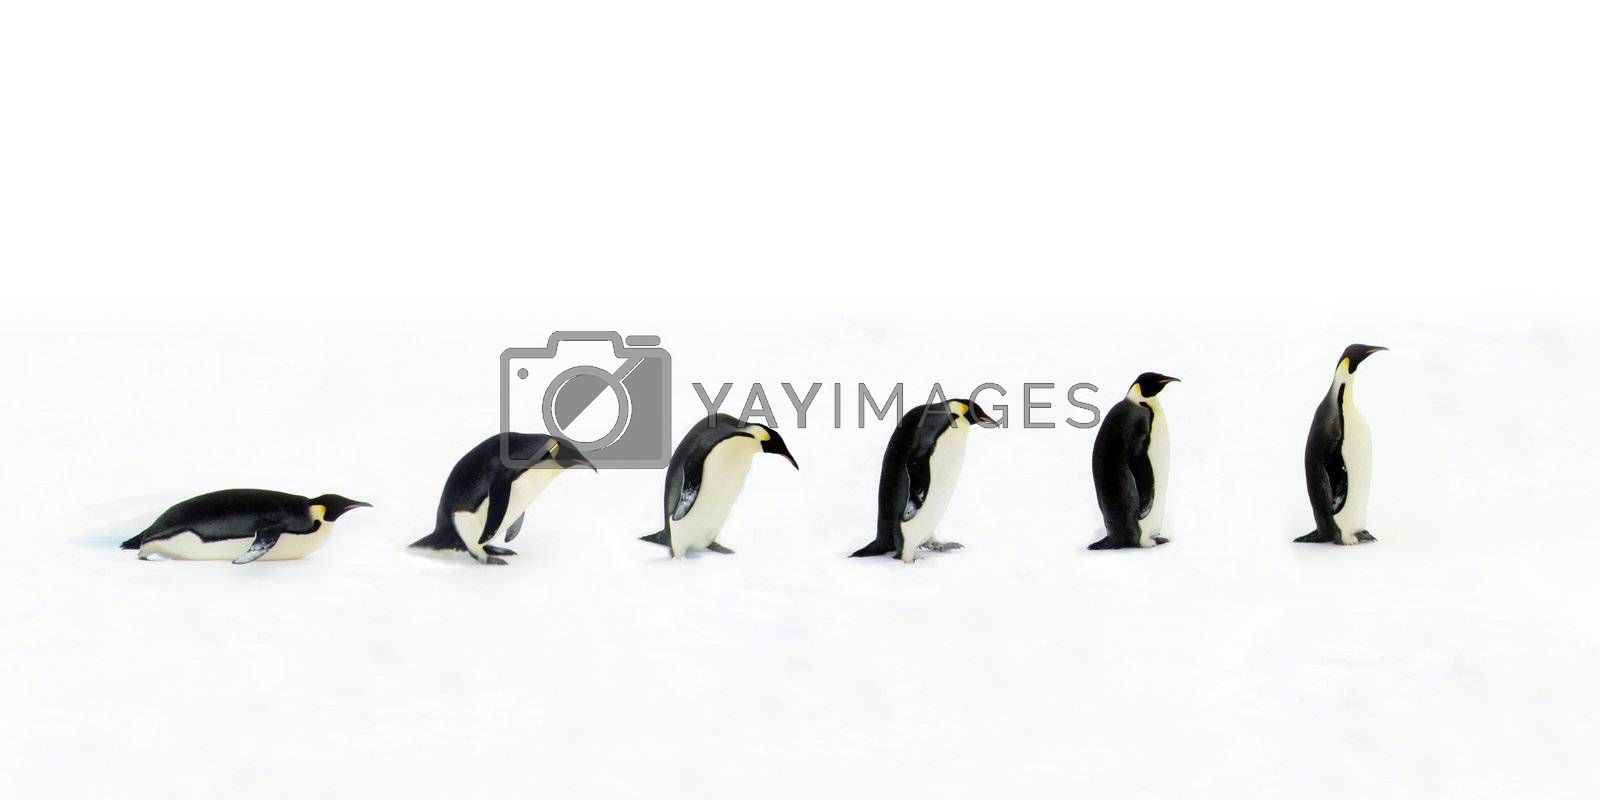 Evolution of the penguin. Once the penguin was a backward belly gliding animal, however with multiple tiny evolutionary steps over billions of years the penguin became on of the most advanced long-neck animals we know of.